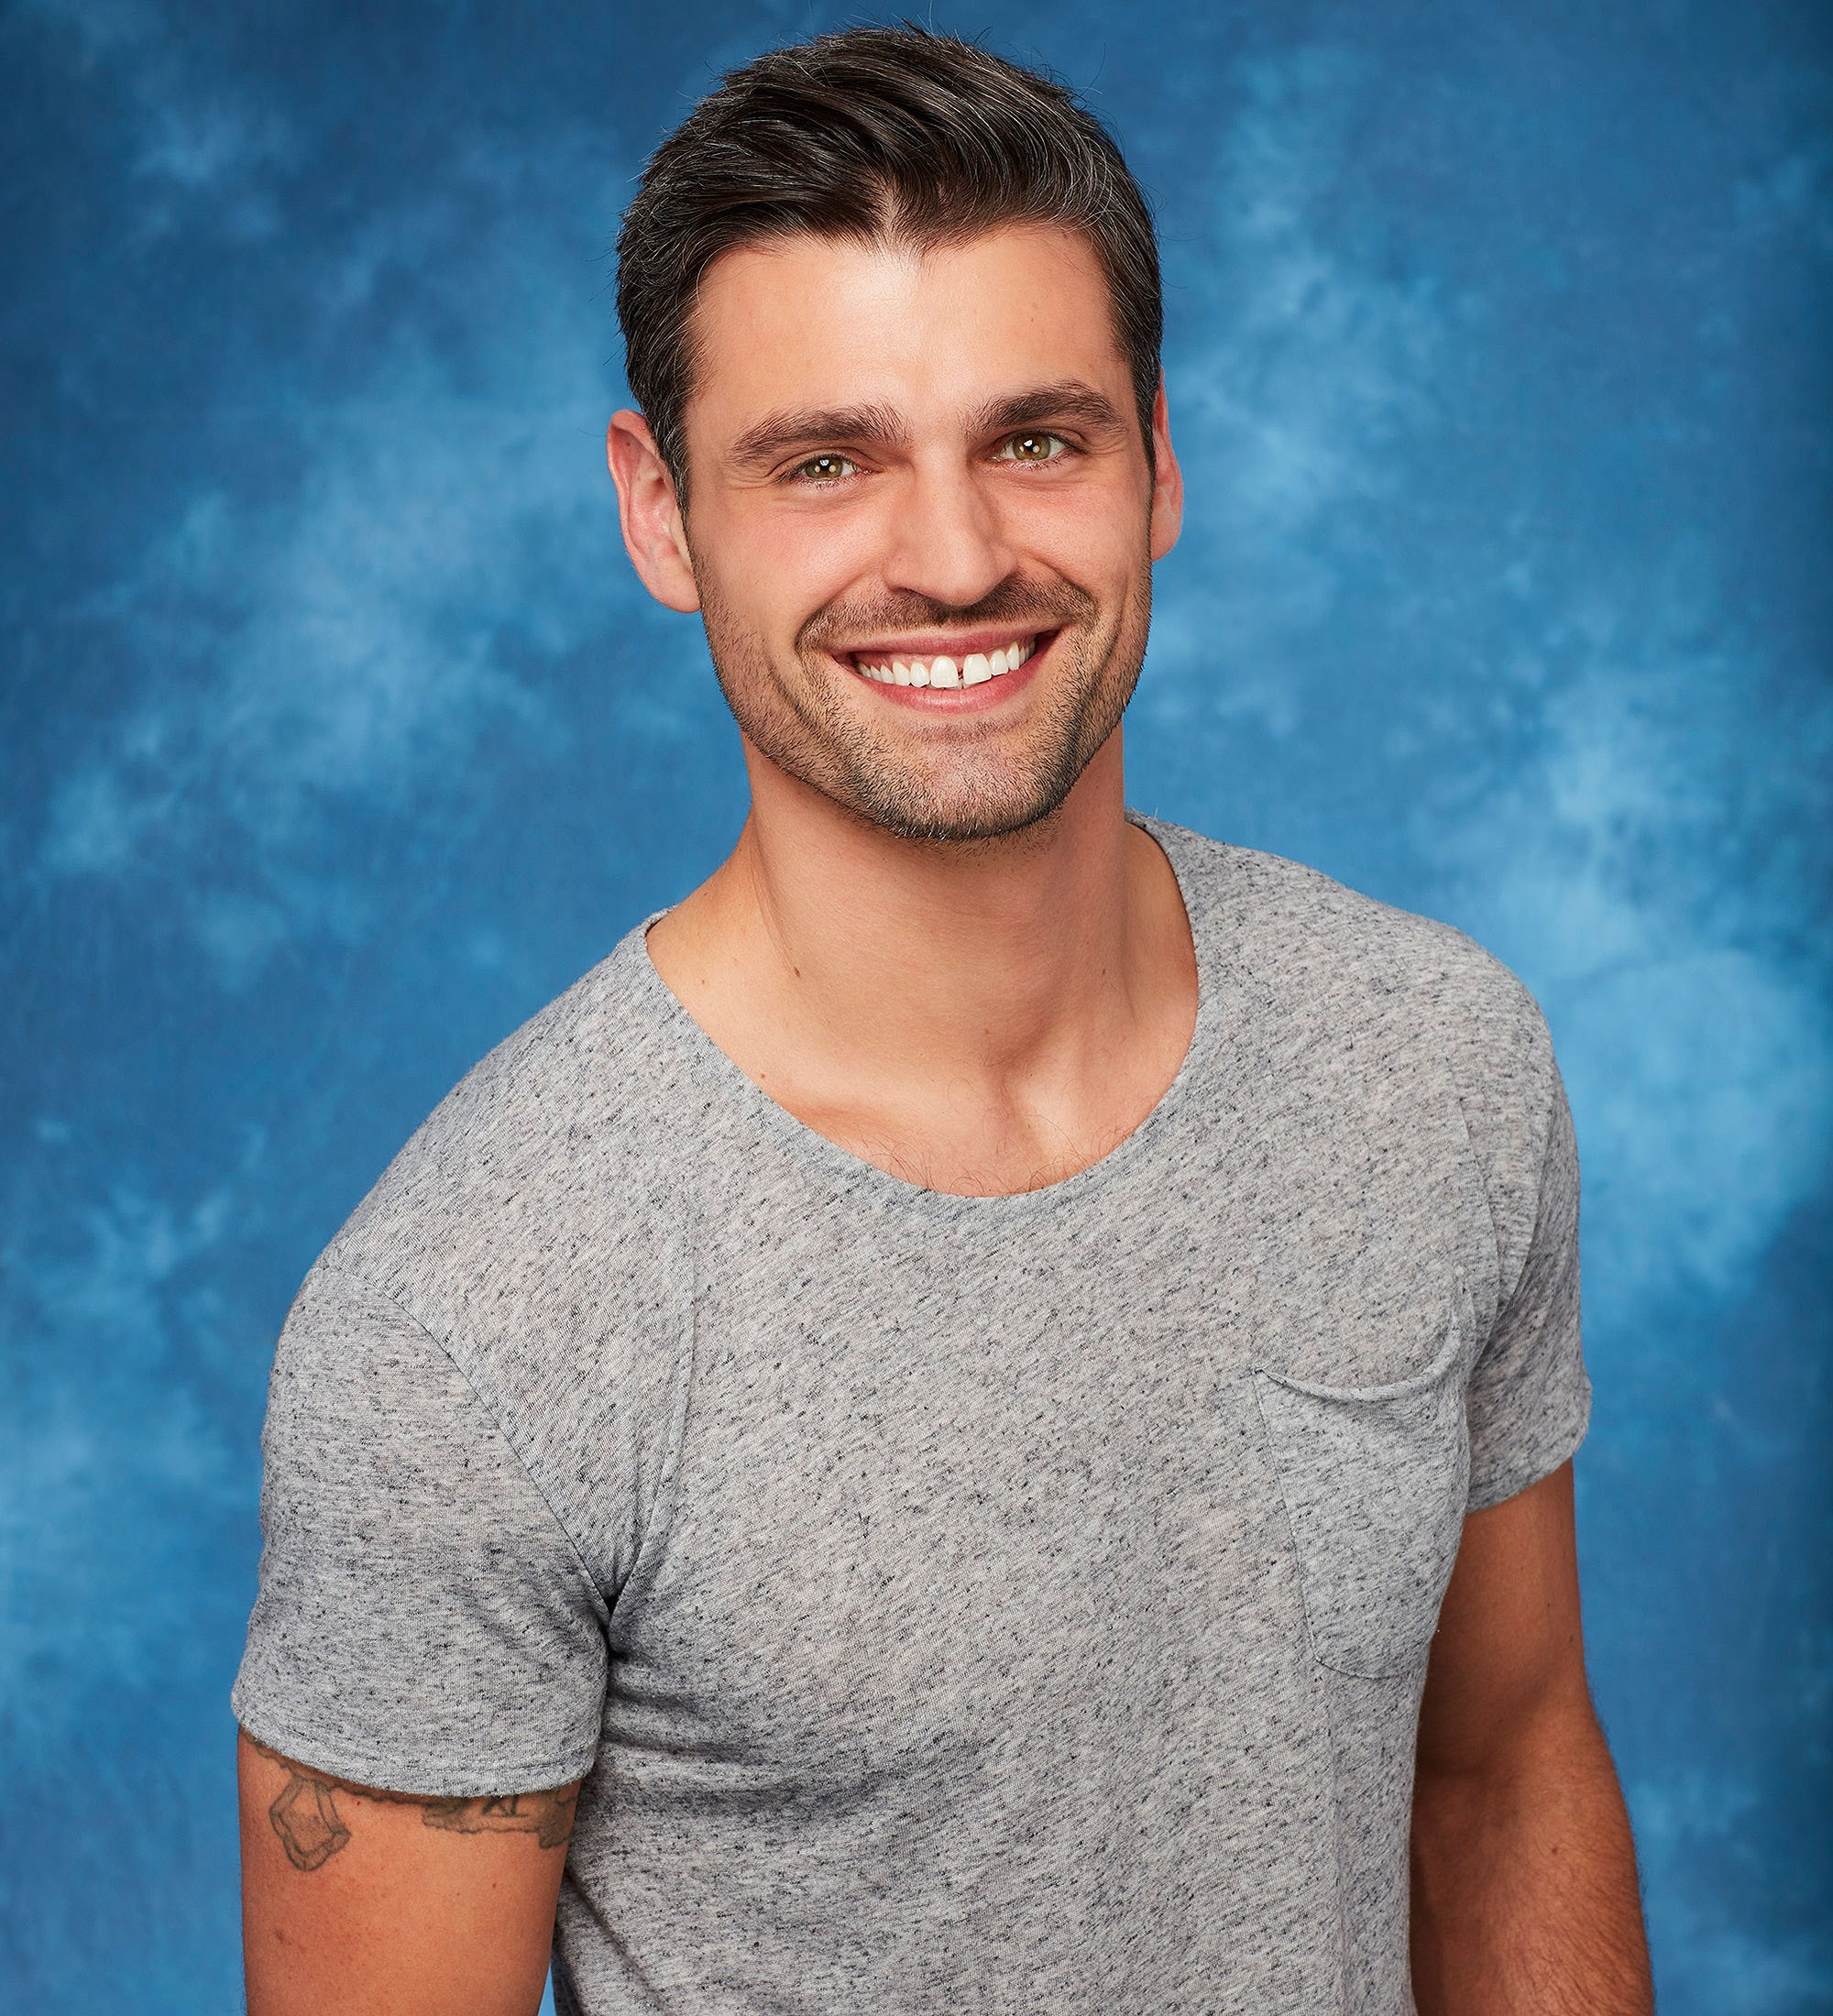 Here's Who Won 'The Bachelorette's' Most Boring Season Ever